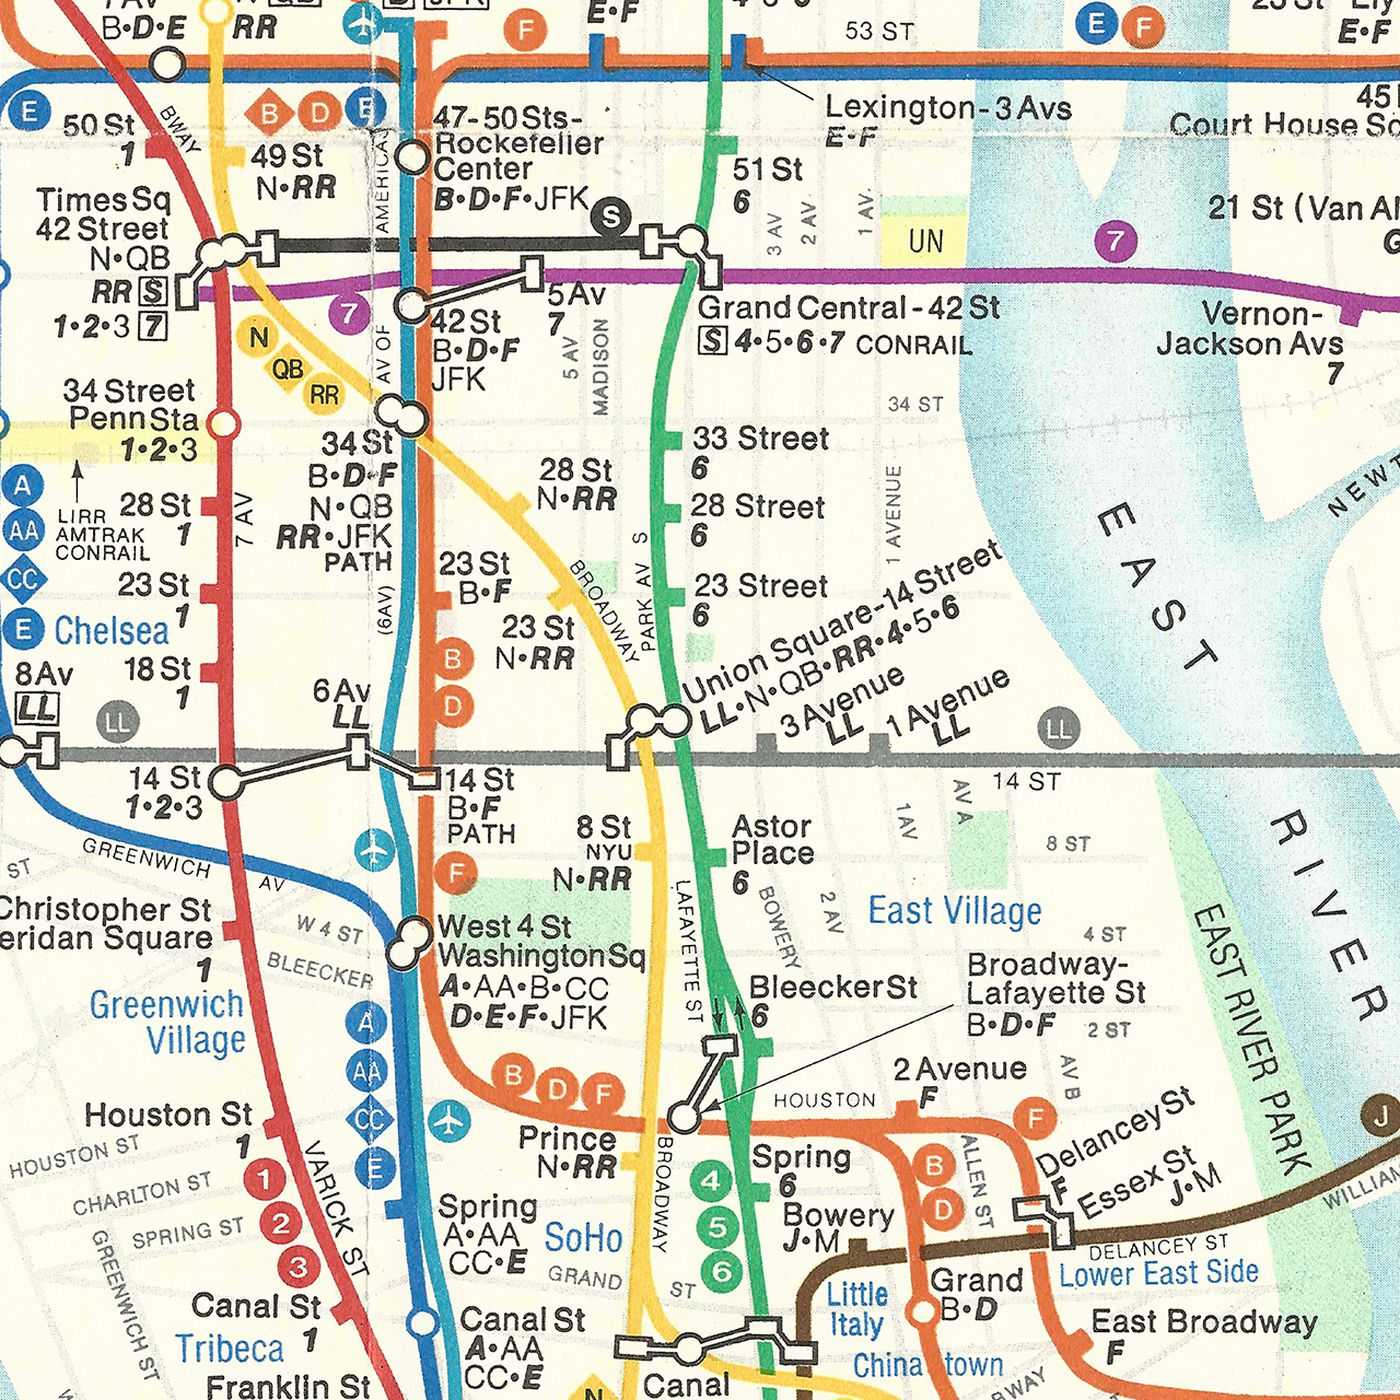 Massimo Vignelli Subway Map 1978.The Great Subway Map War Of 1978 Revisited The Verge